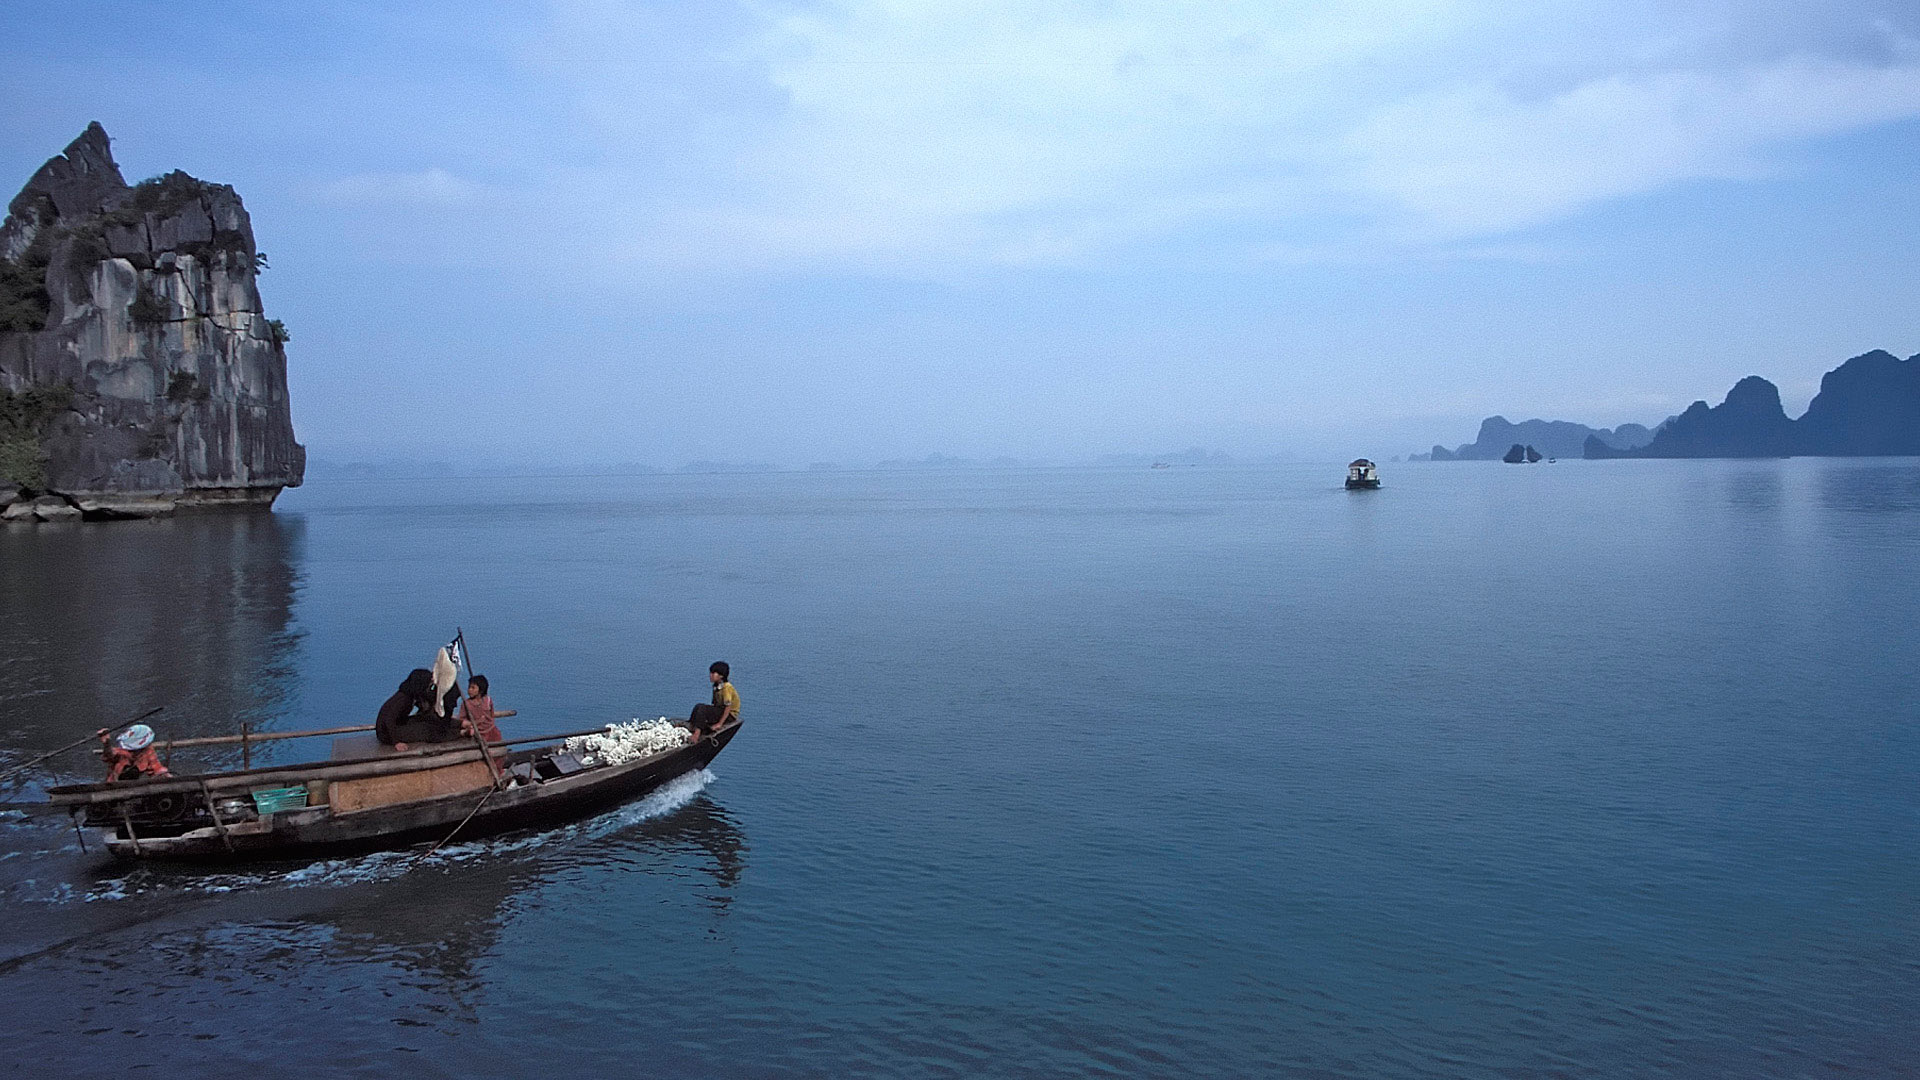 Boat travelling through the Limestone karsts and isles in various sizes and shapes in Ha Long Bay, Quang Ninh, Vietnam